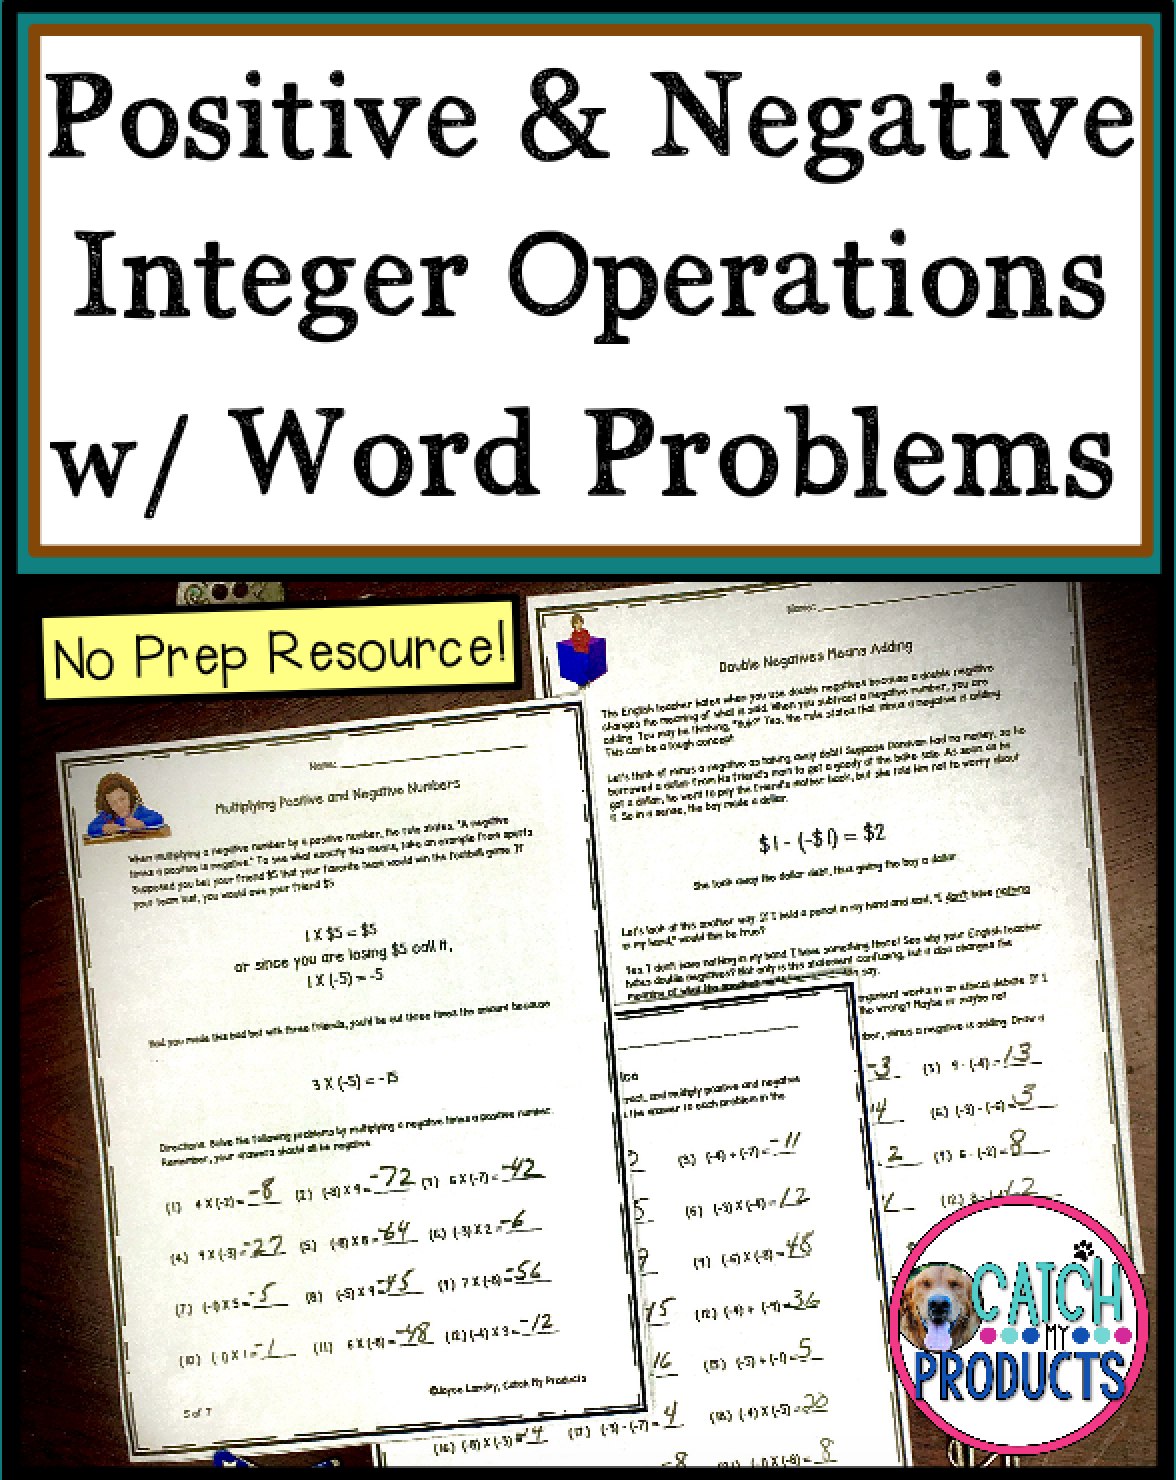 Positive And Negative Integers Operations And Word